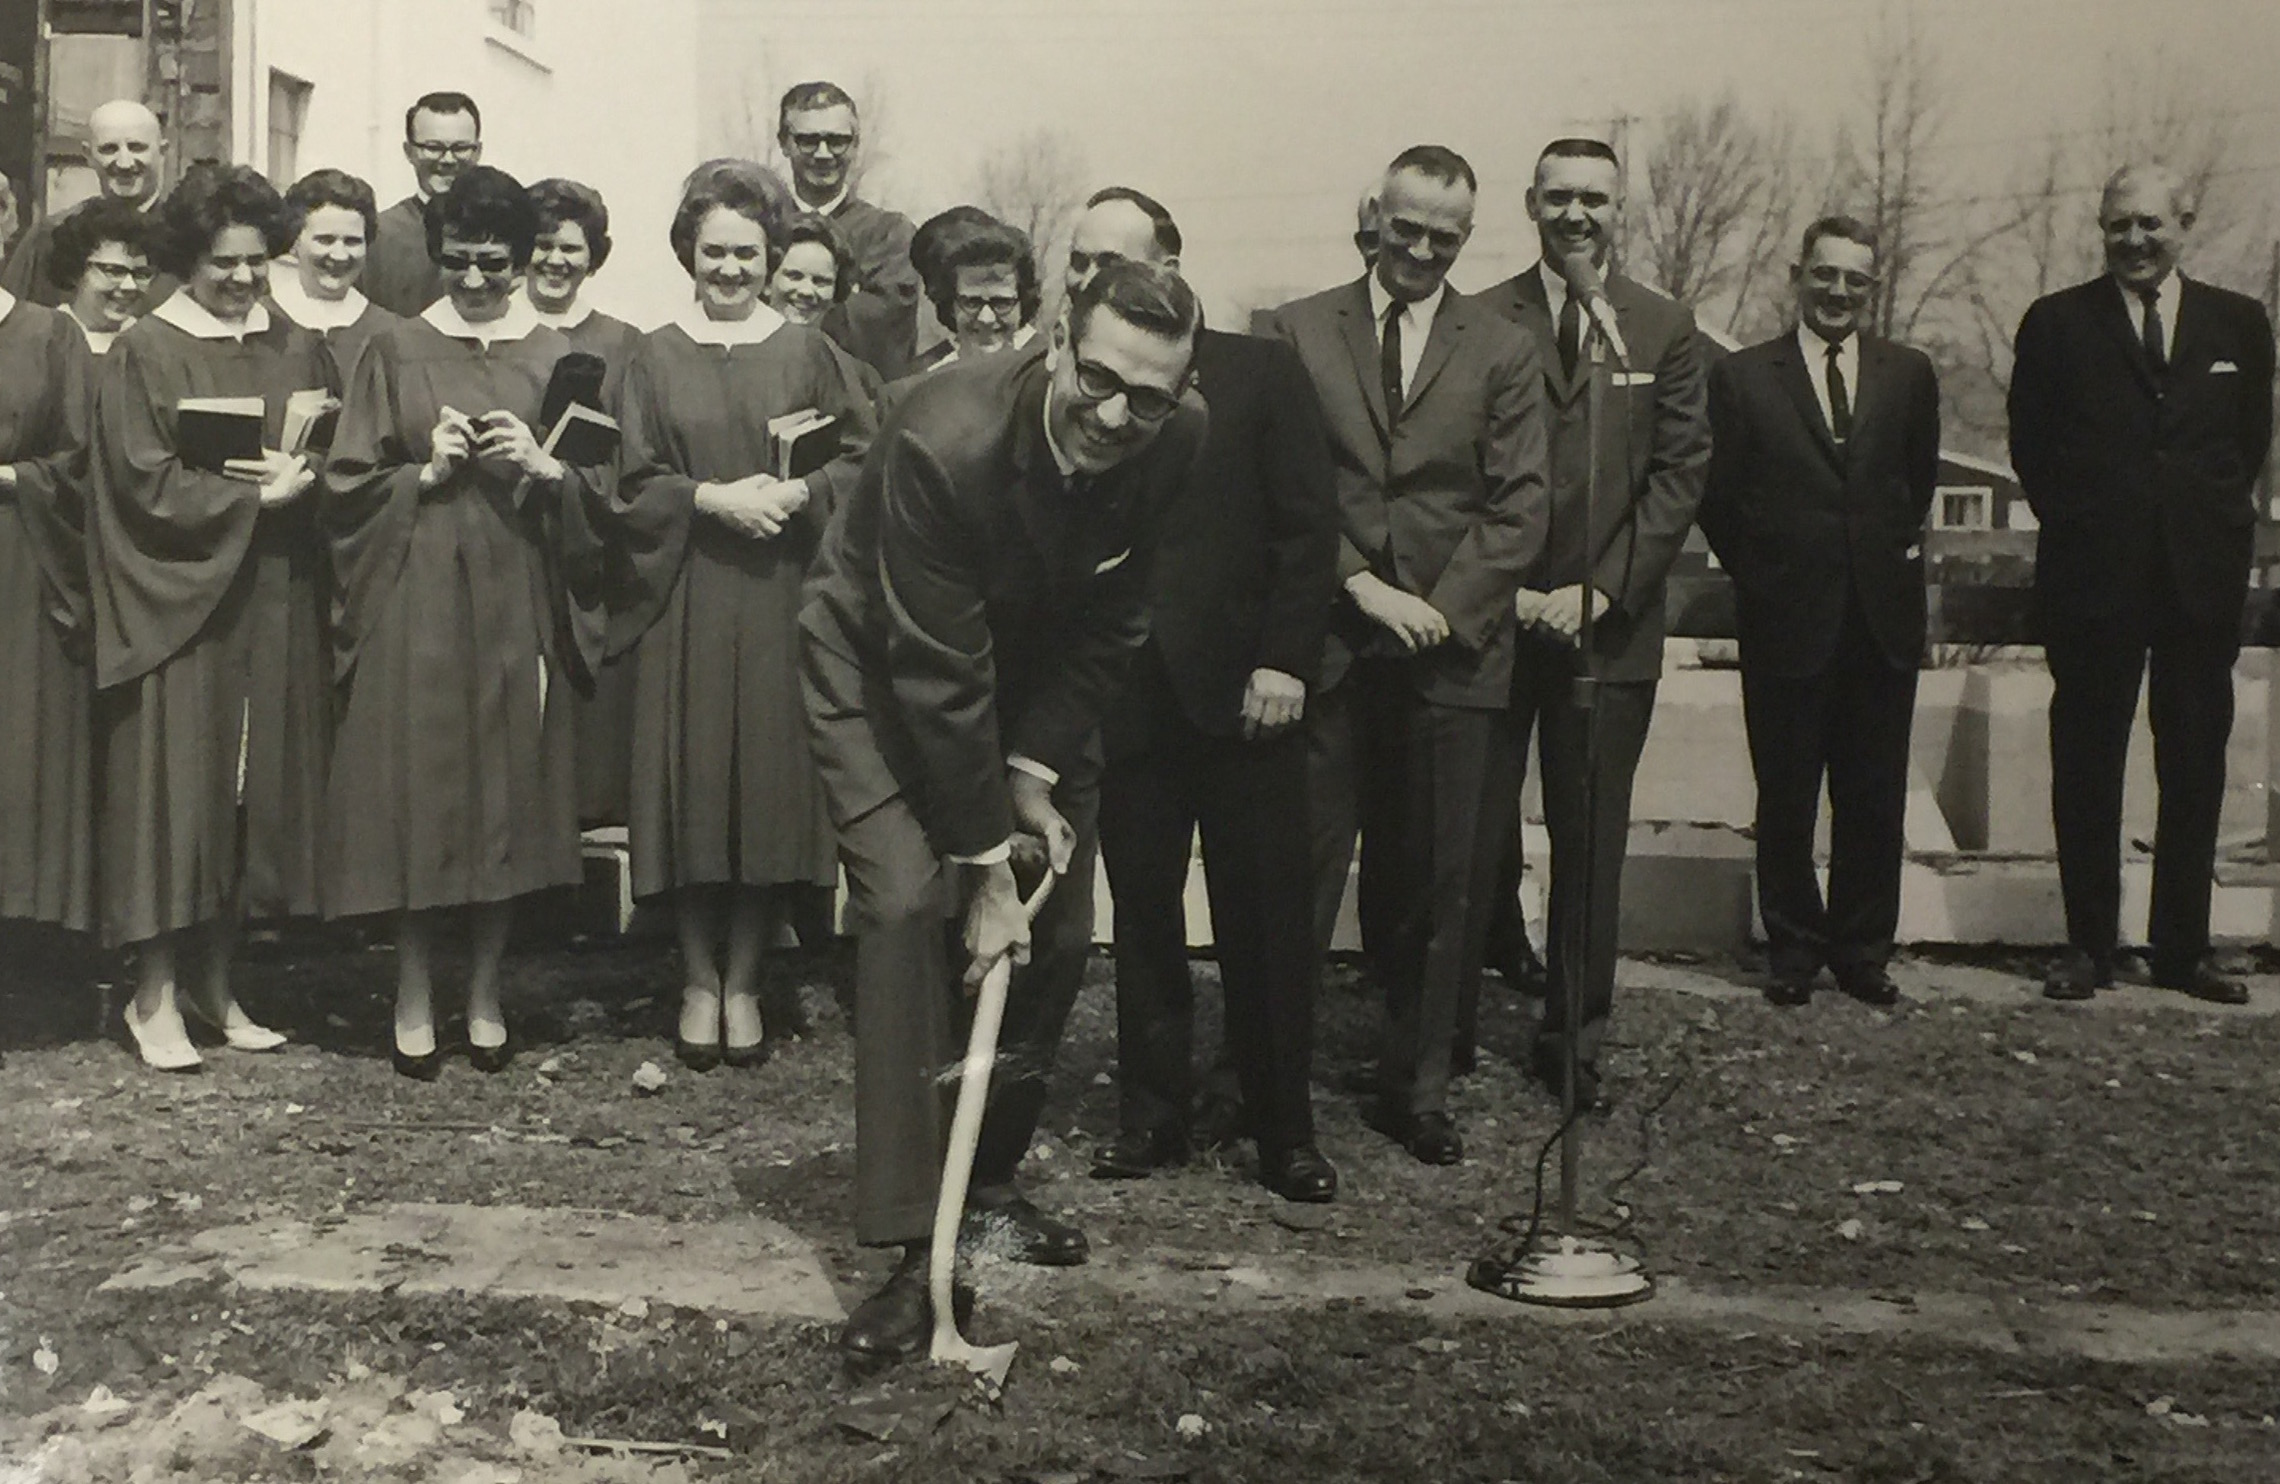 Pastor Wilson and the church breaking ground for the current sanctuary in 1965